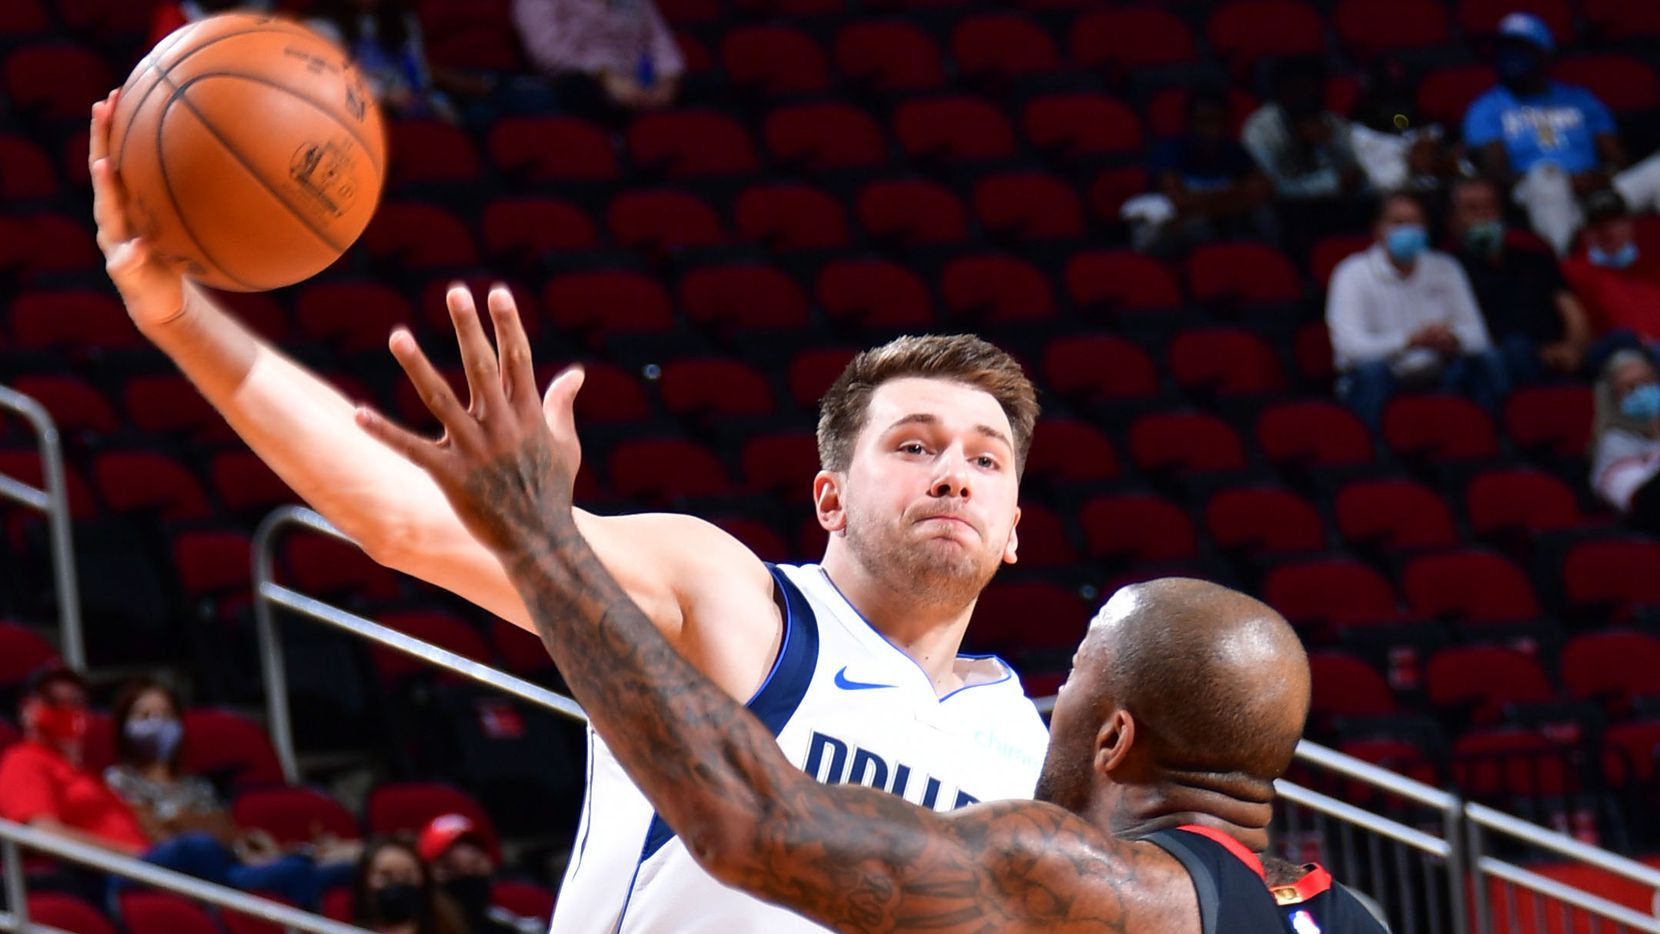 HOUSTON, TX - JANUARY 4:  Luka Doncic #77 of the Dallas Mavericks passes the ball against the Houston Rockets P.J. Tucker on January 4, 2021 at the Toyota Center in Houston, Texas.